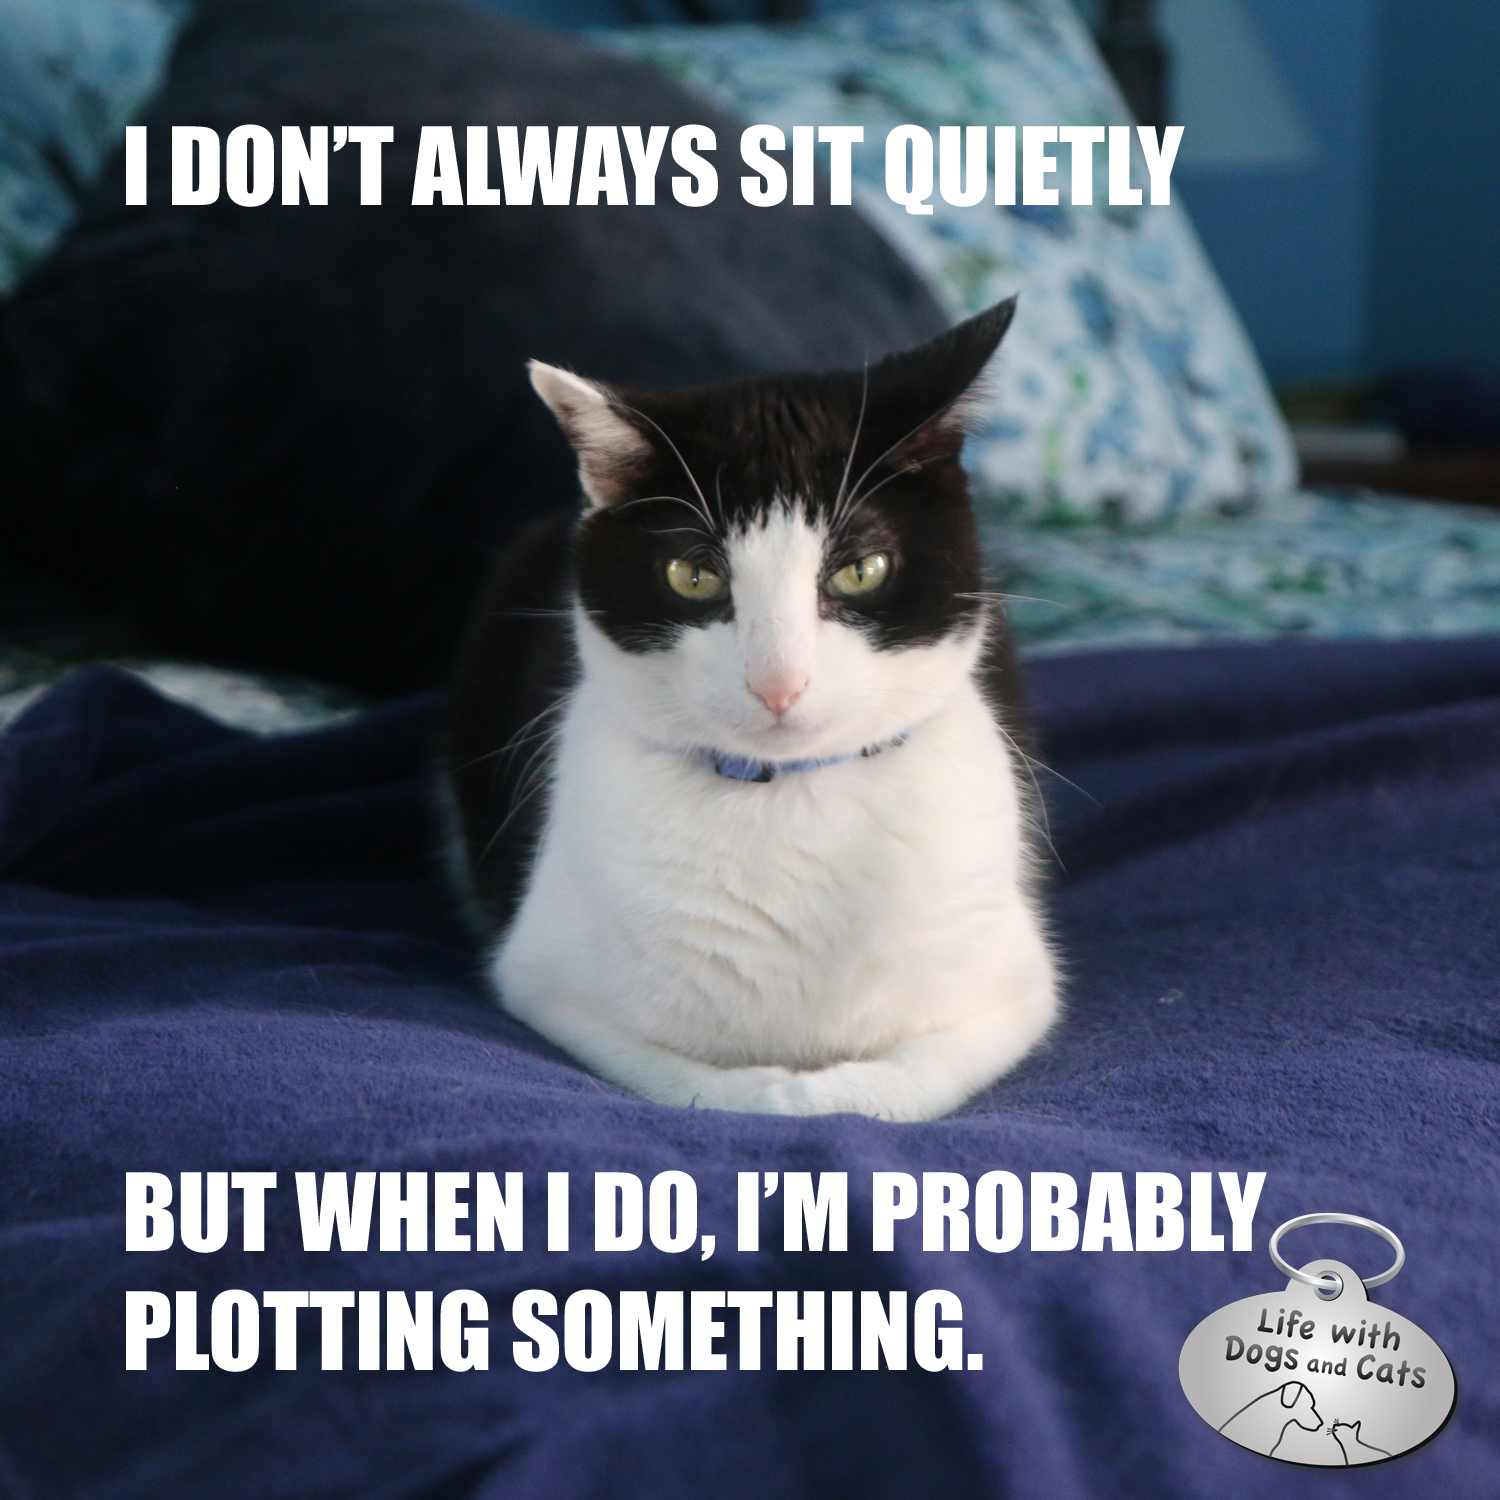 I don't always sit quietly, but when I do, I'm probably plotting something #CalvinTKatz